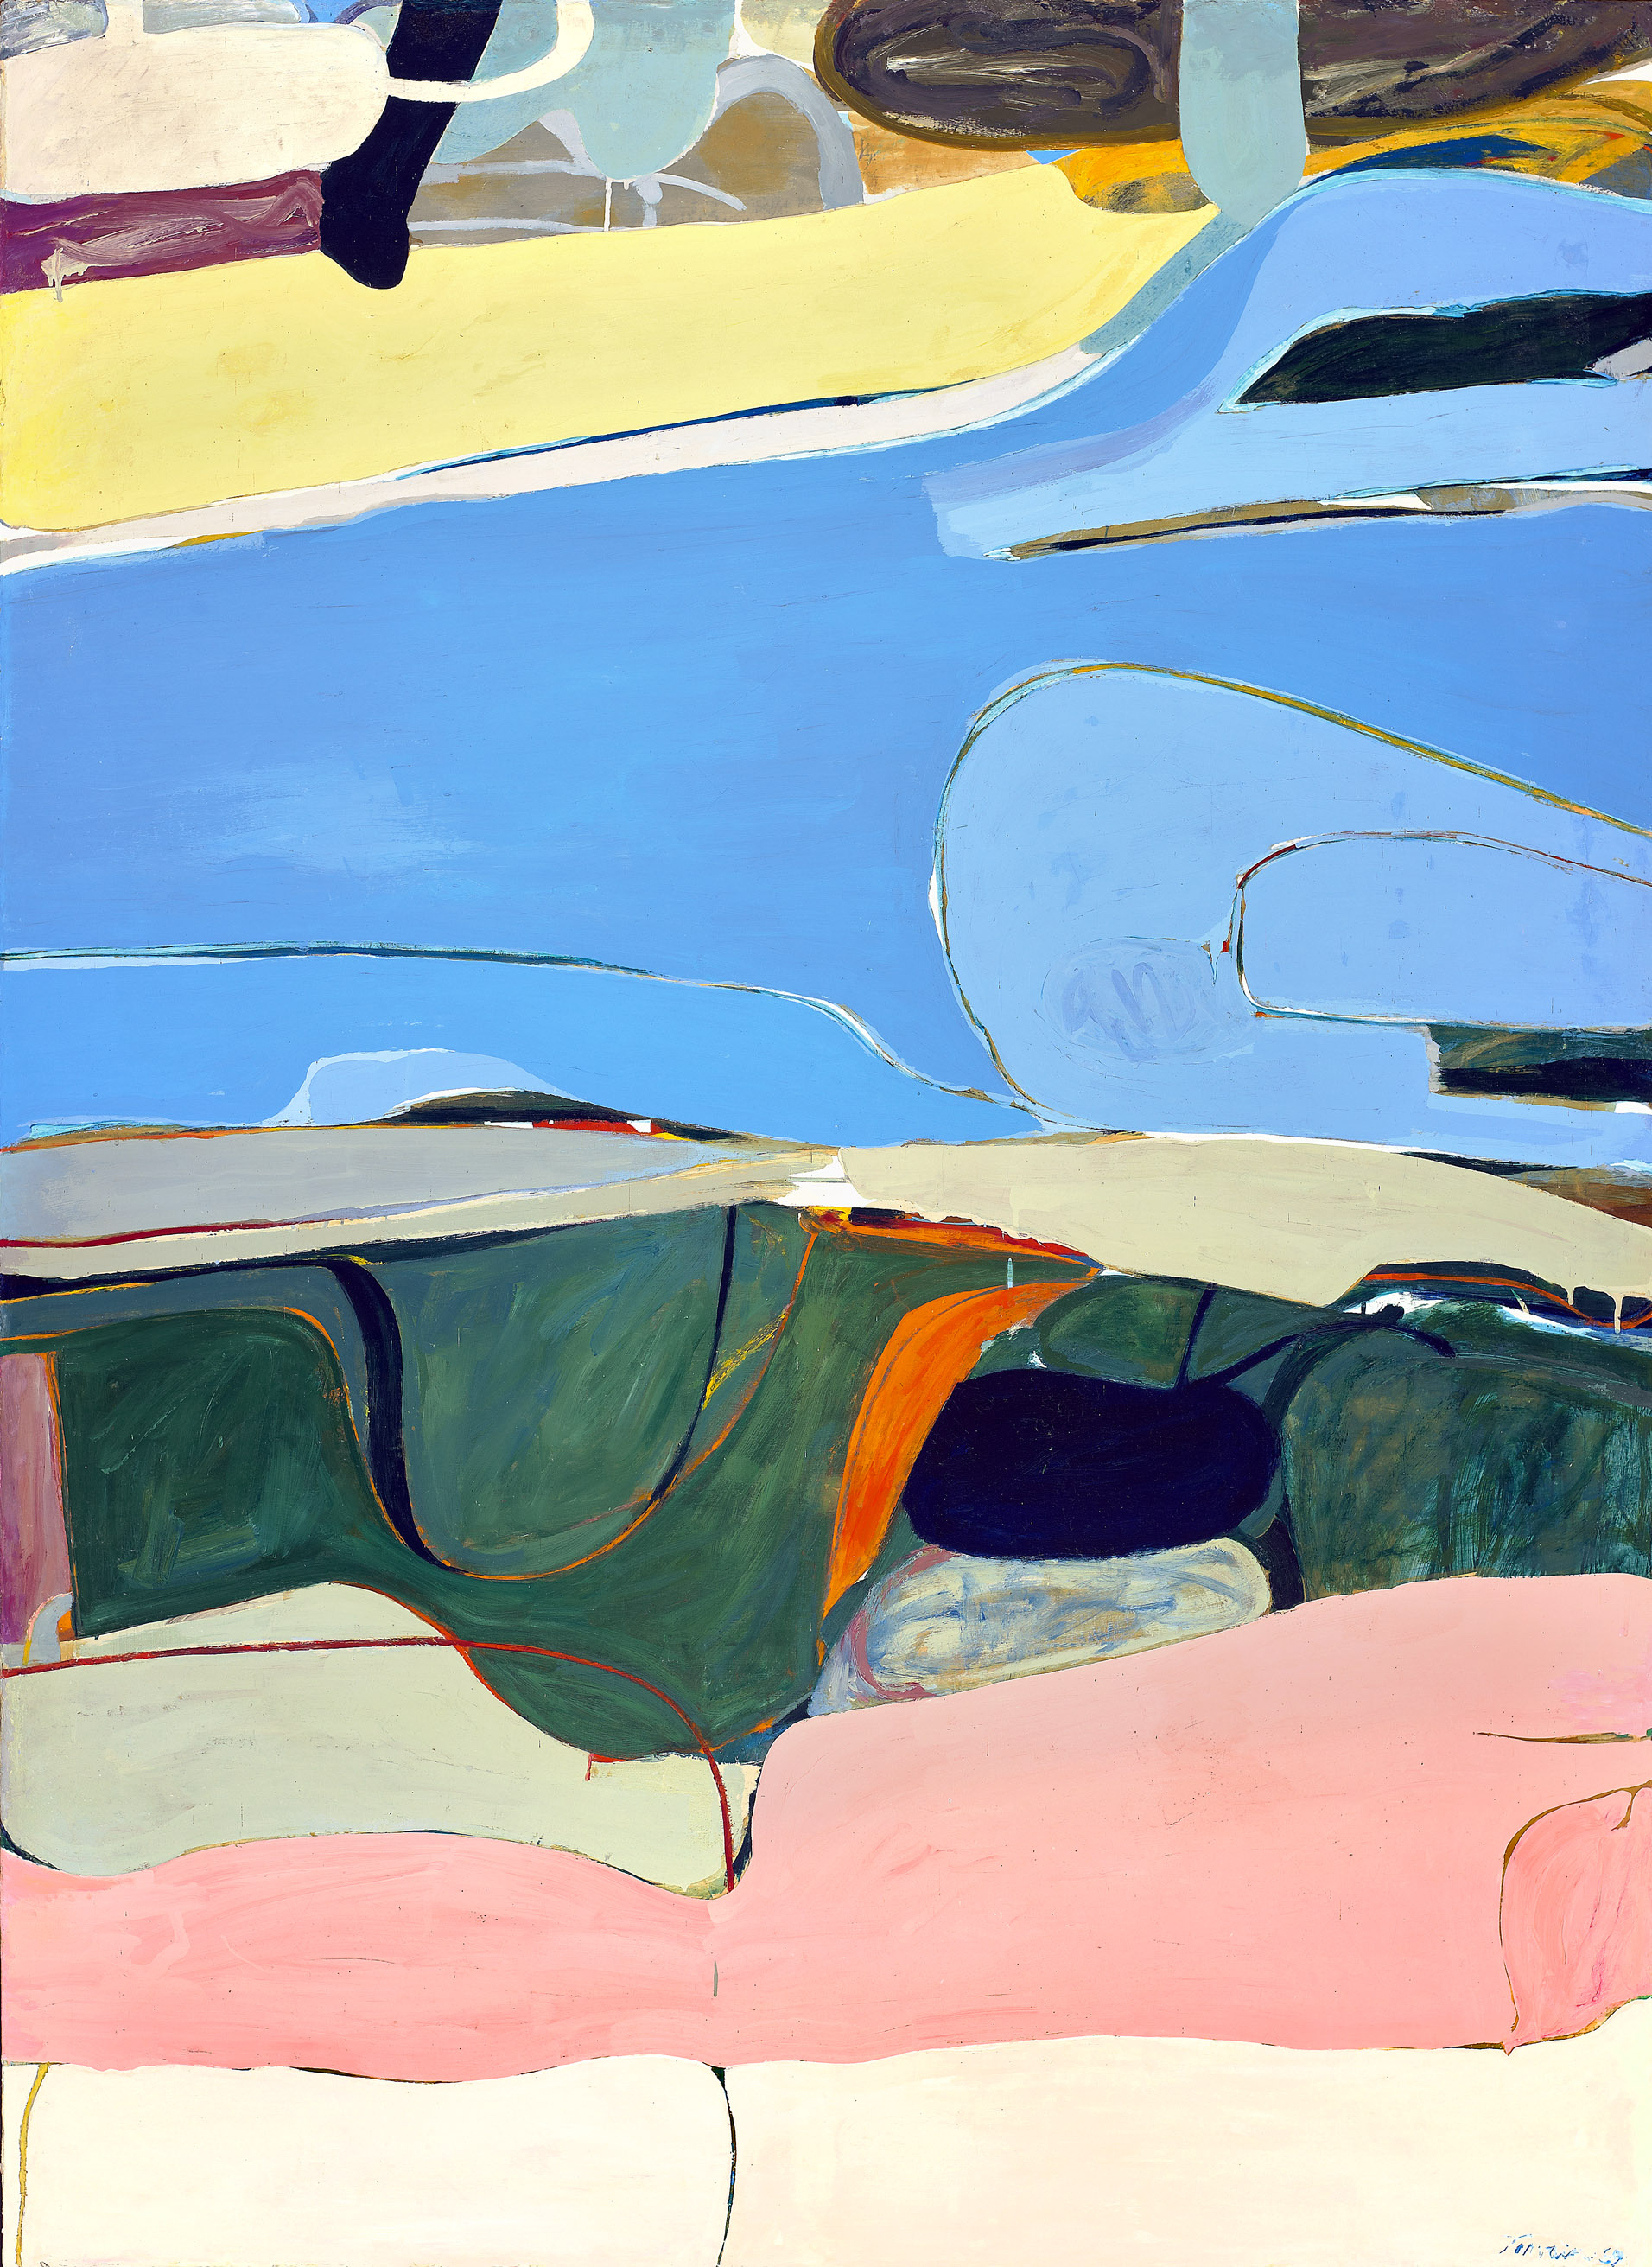 James Jarvaise   Hudson River Series , 1959 oil on canvas 79 1/2 x 58 1/2 inches; 201.9 x 148.6 centimeters